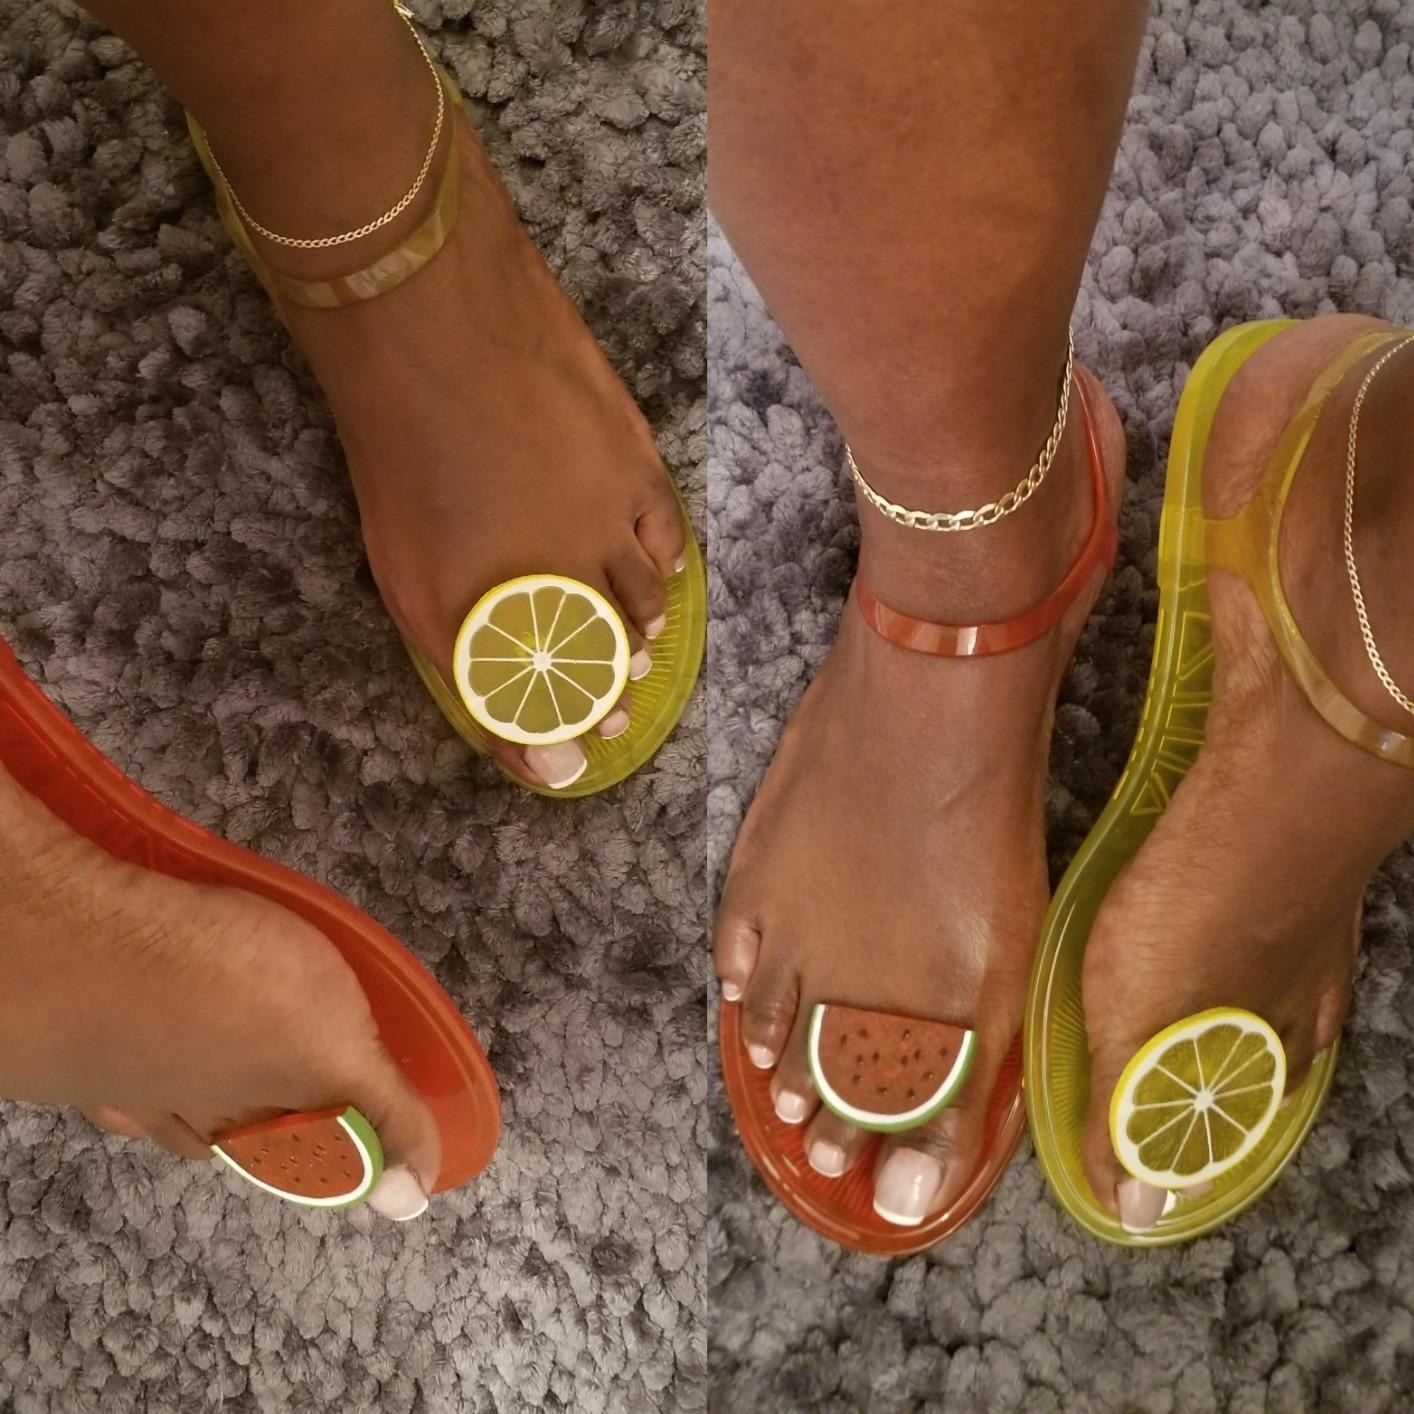 A reviewer models the sandals in the lemon and watermelon styles